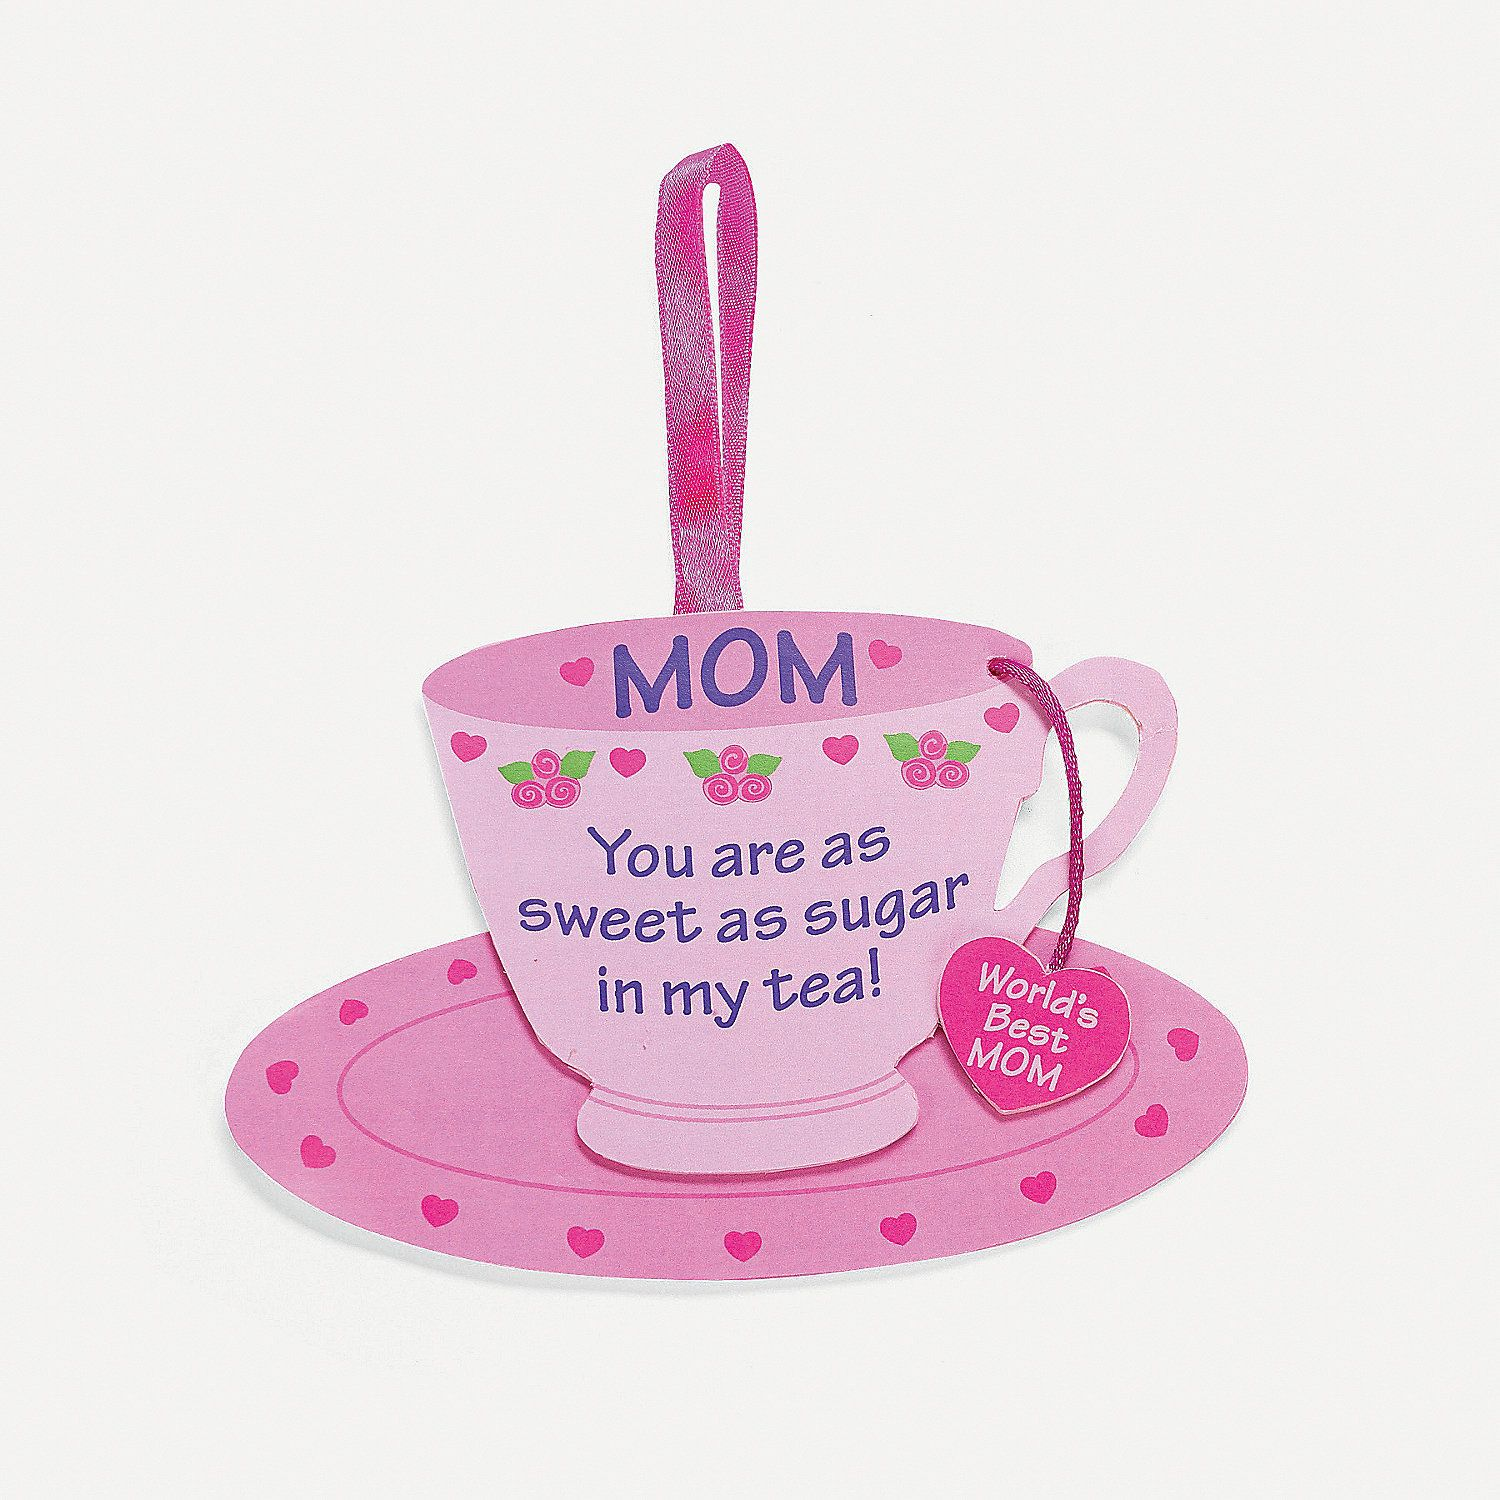 mom u201d tea cup ornament craft kit for mother u0027s day mother u0027s day